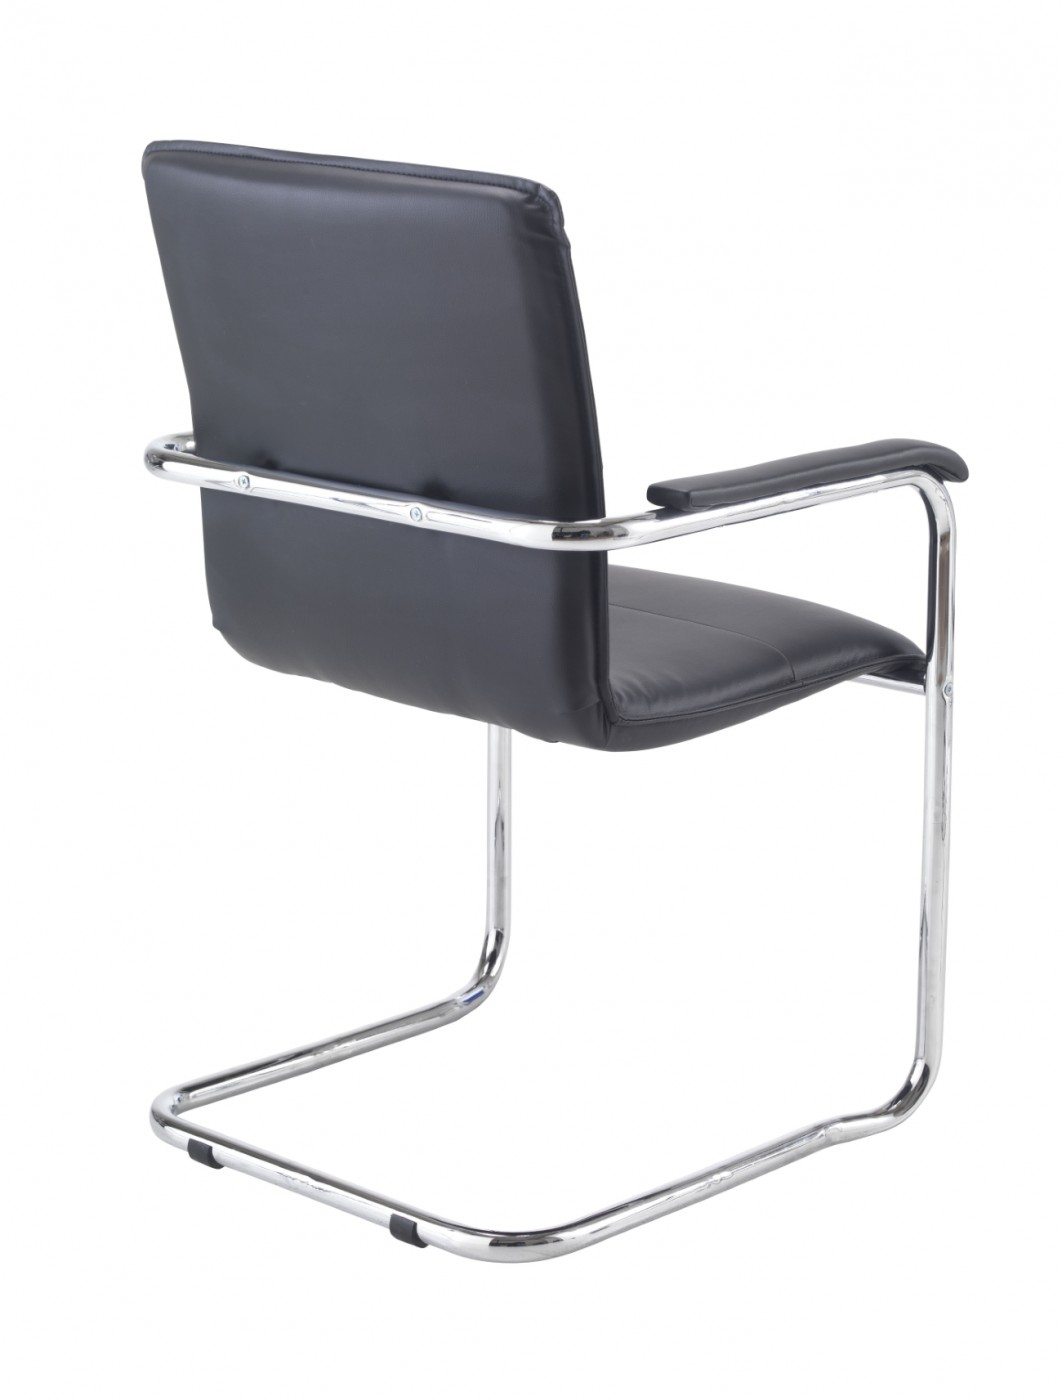 Visitor Chairs - TC Pavia Executive Visitor Chair CH2235 (Pair of Chairs)